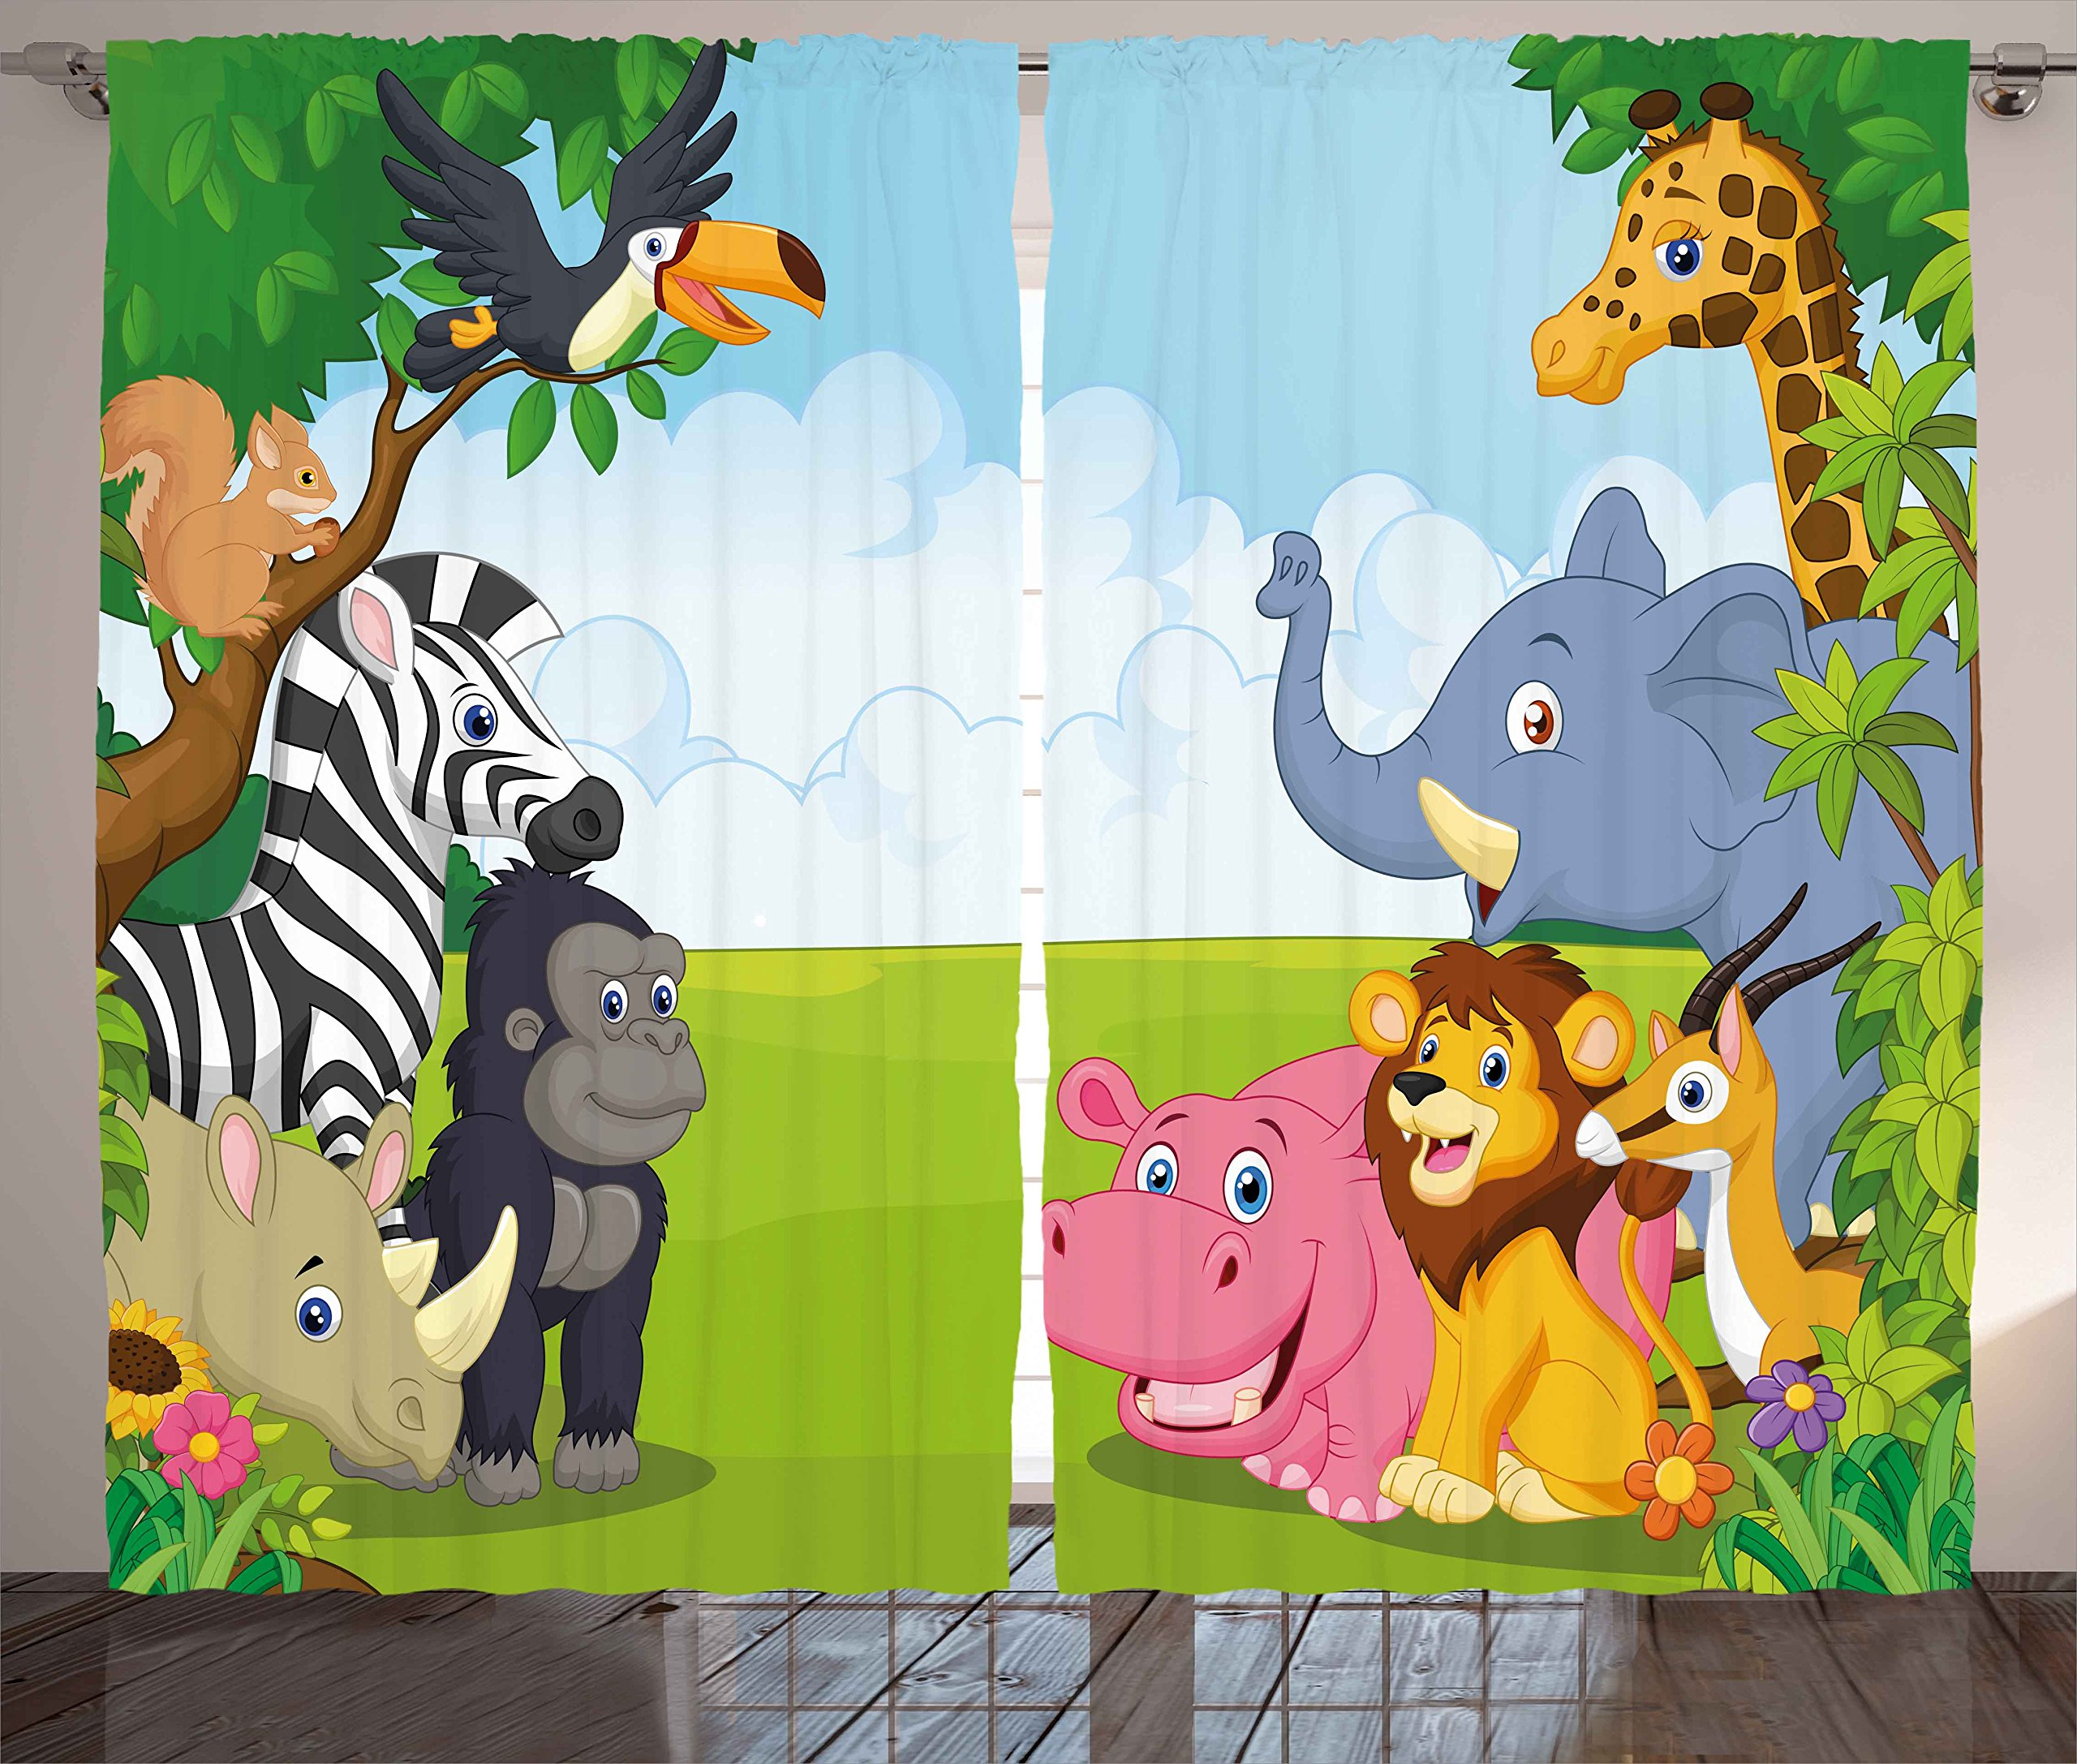 Ambesonne Kids Decor Curtains, Kids Decor Children Nursery Room Safari Themed Cartoon Animals Image Art Print, Living Room Bedroom Window Drapes 2 Panel Set, 108W X 63L inches, Multicolor